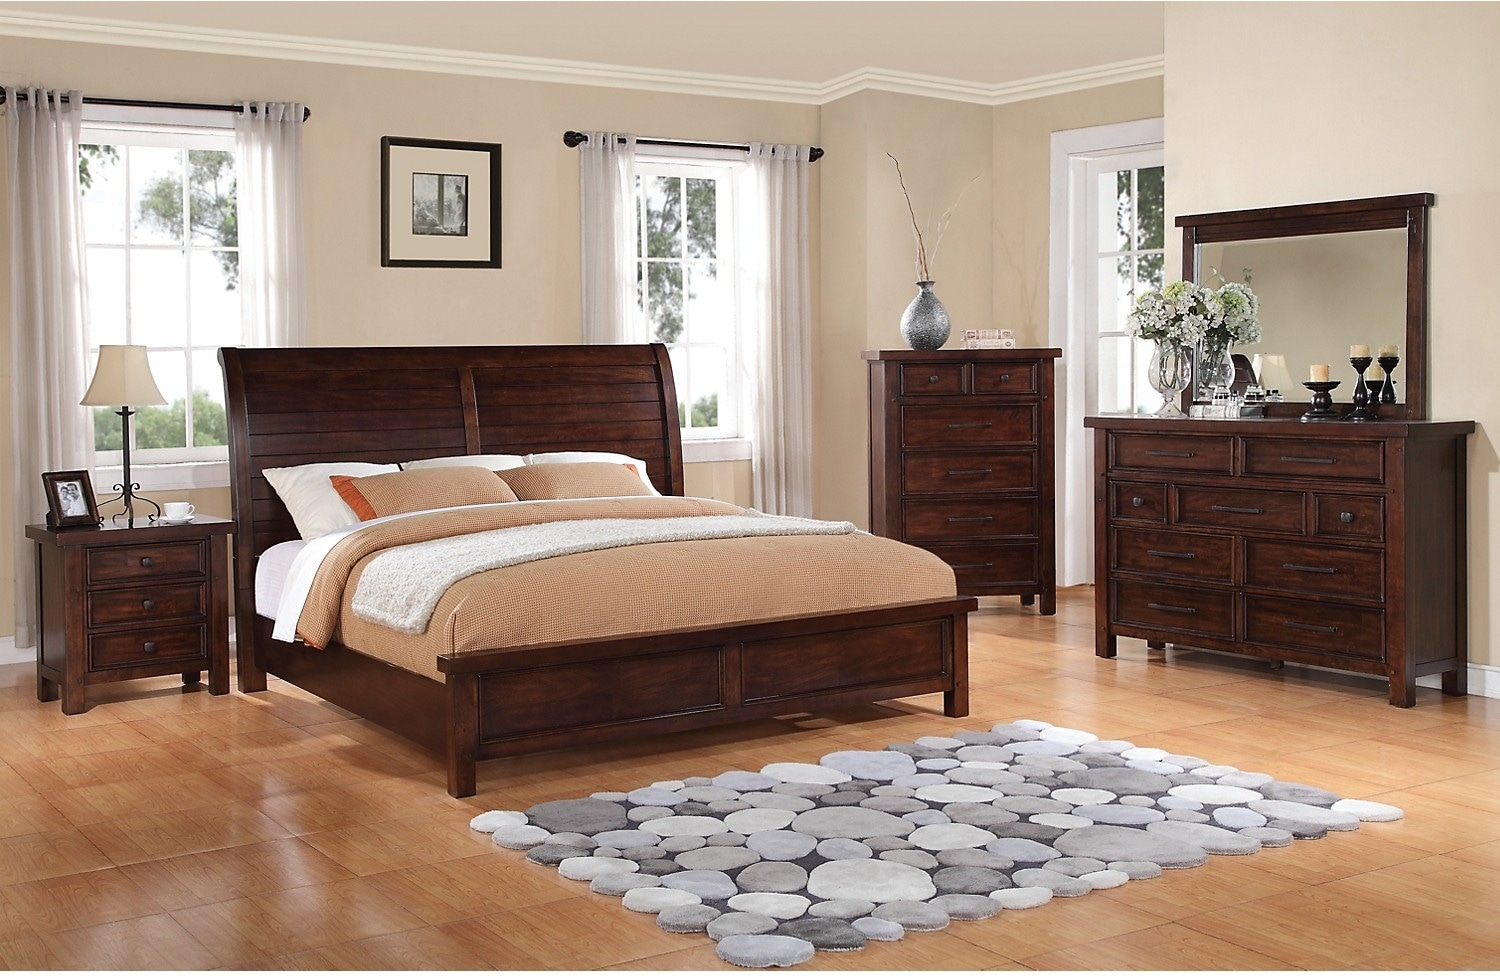 Bedroom Furniture - Sonoma 7-Piece King Bedroom Package - Dark Brown